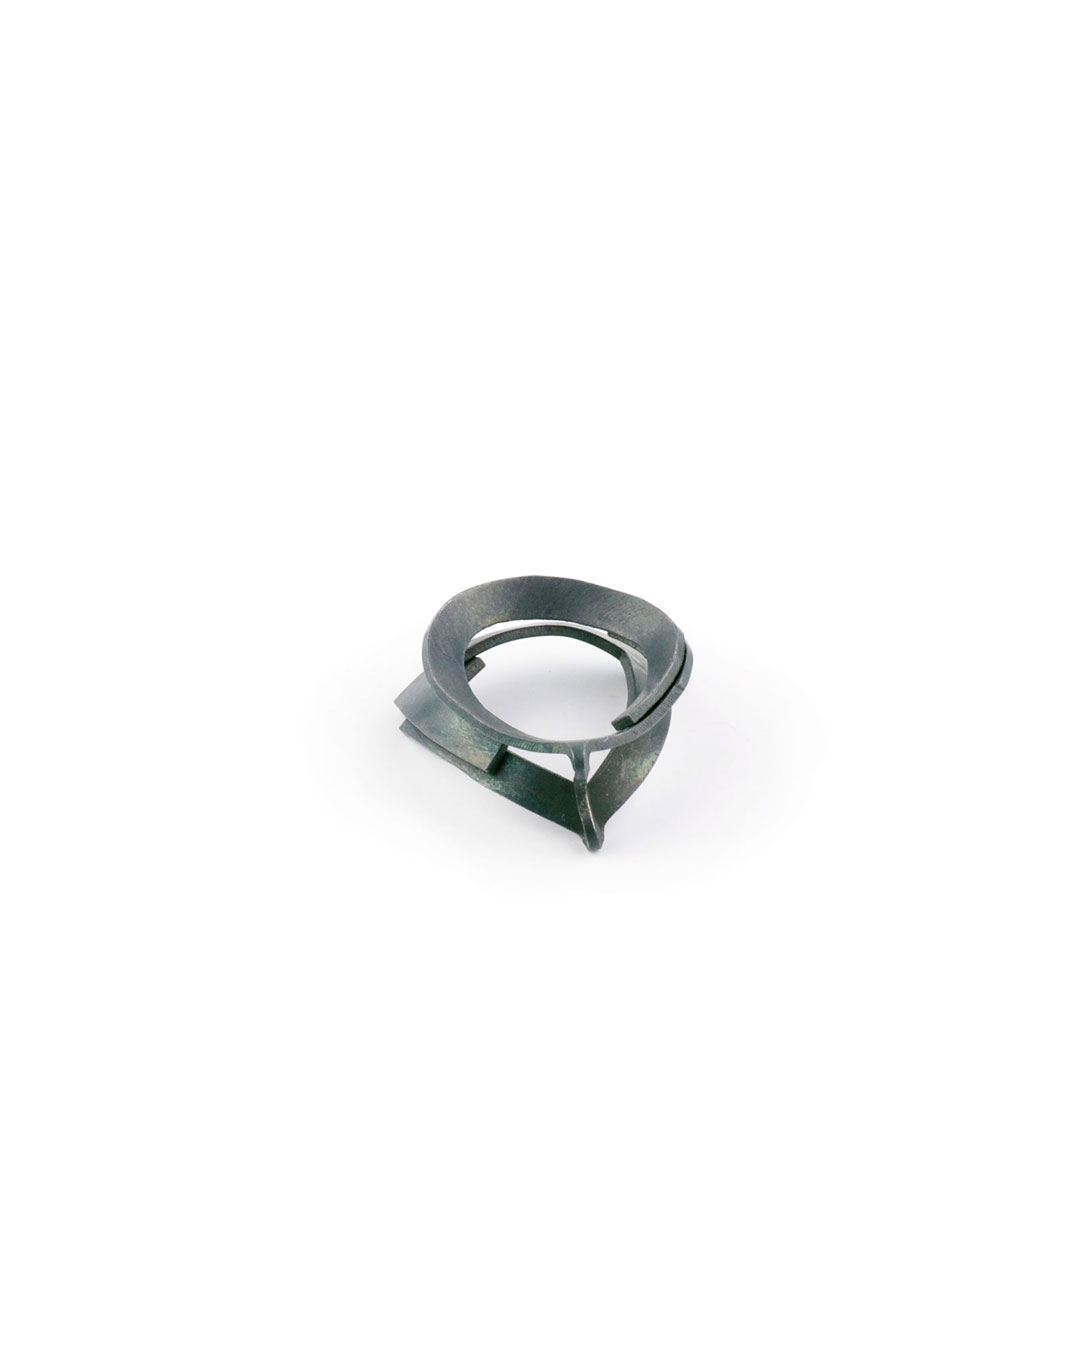 Dongchun Lee, untitled, 1998, ring; steel, 28 x 33 x 10 mm, €190